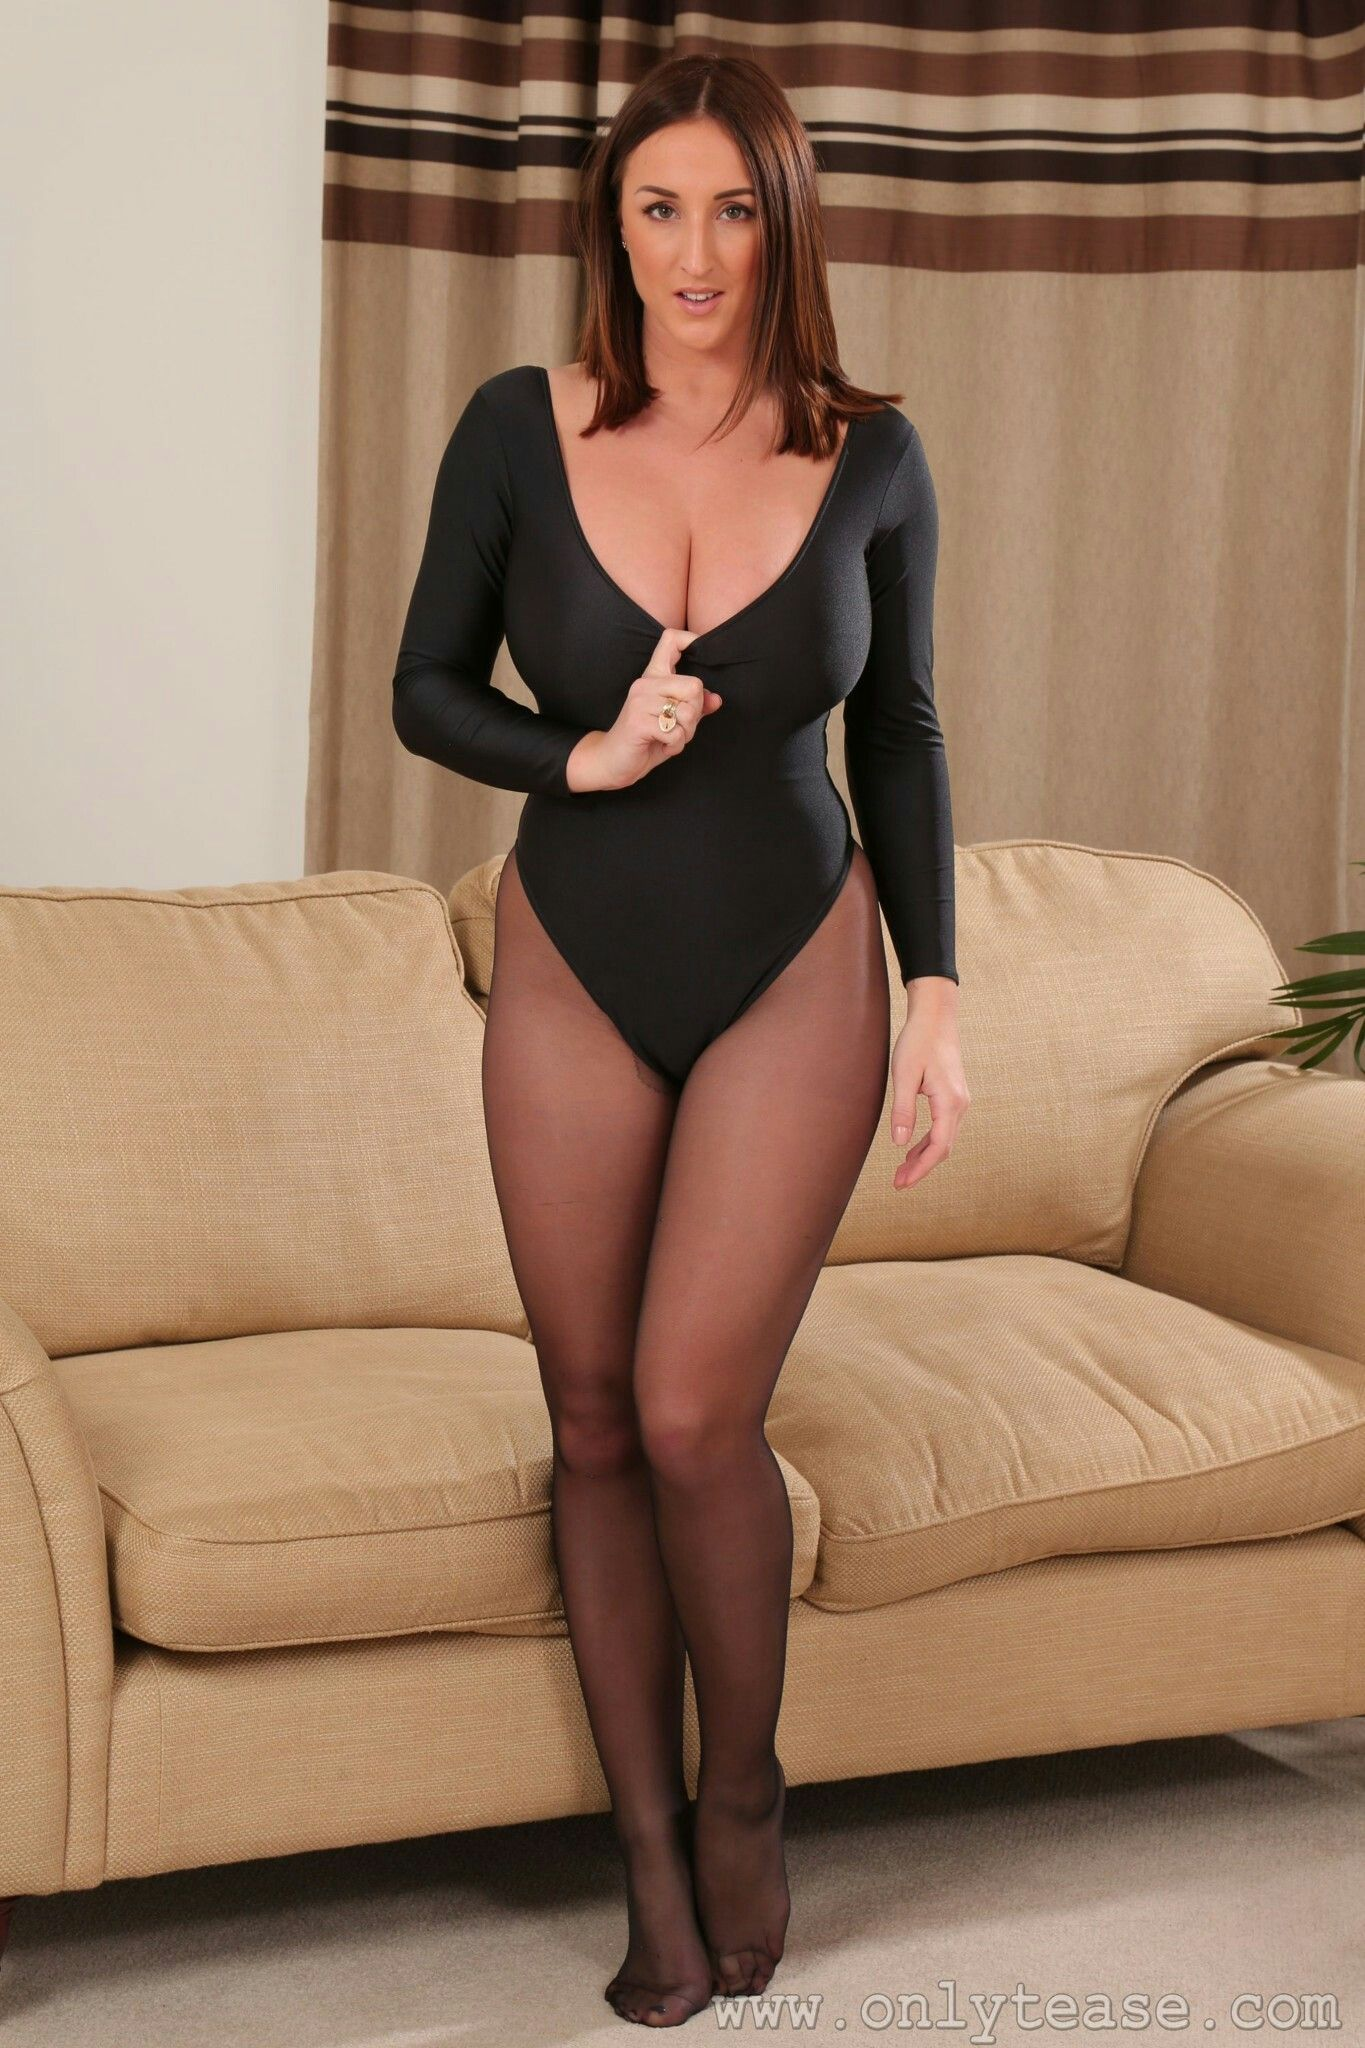 Legs Hot Teen Pantyhose Can 107